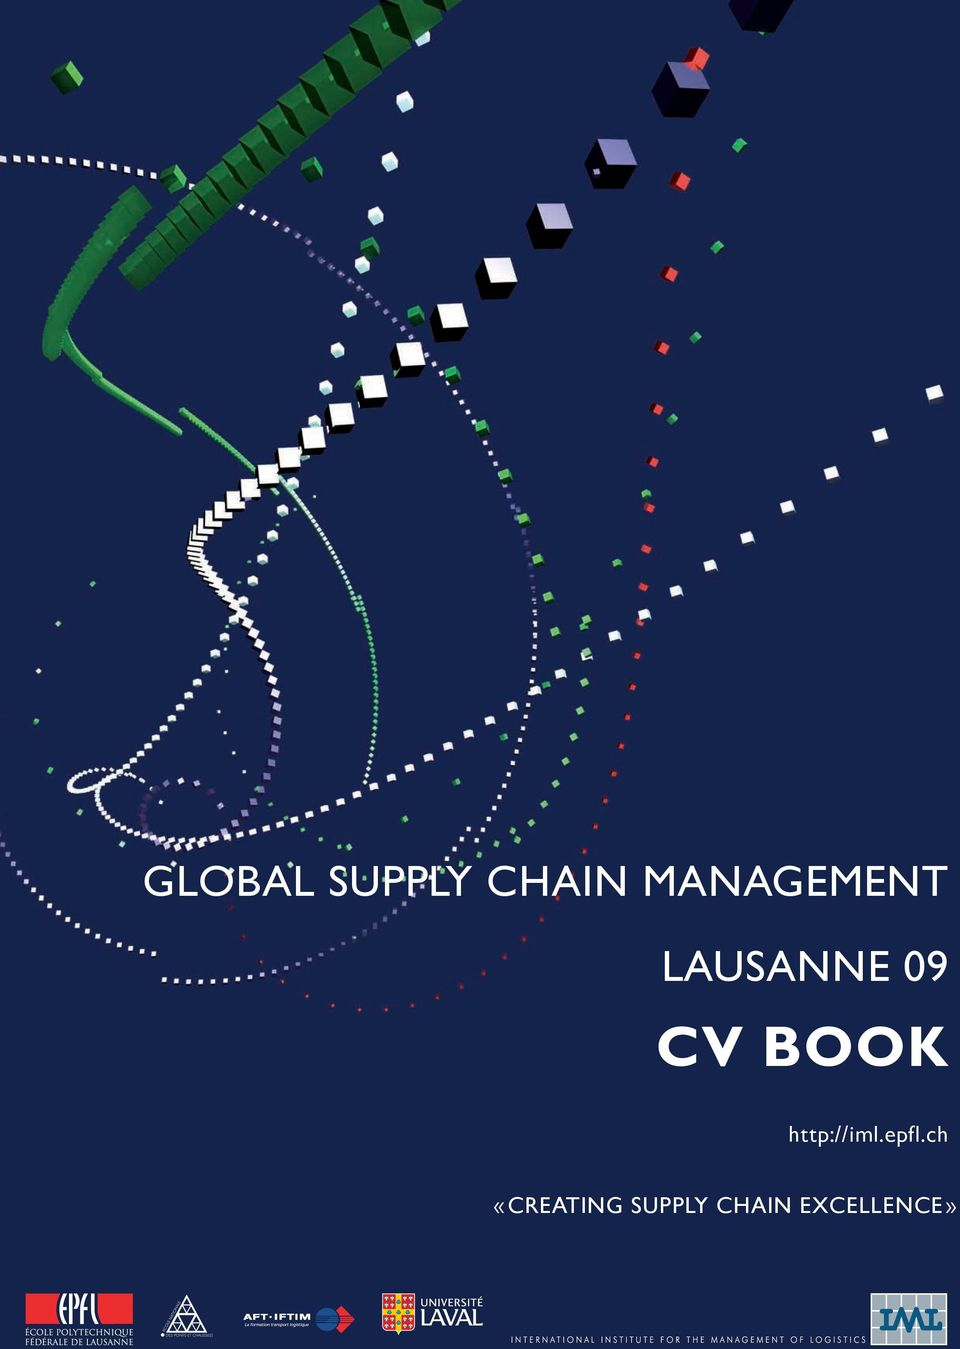 global supply chain management lausanne 09 cv book